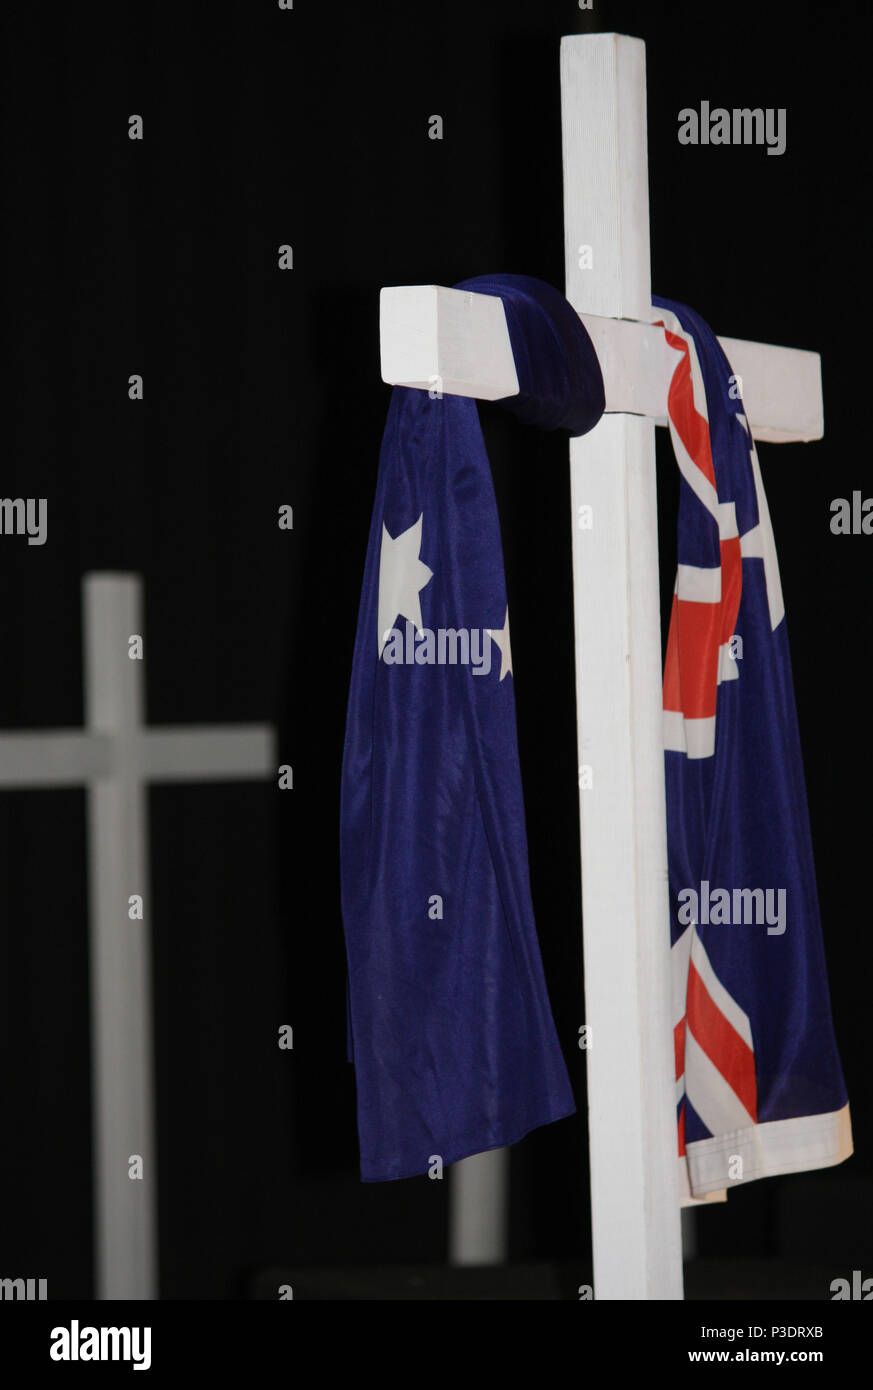 The Australian Flag symbolically draped over a white cross with dark background. - Stock Image